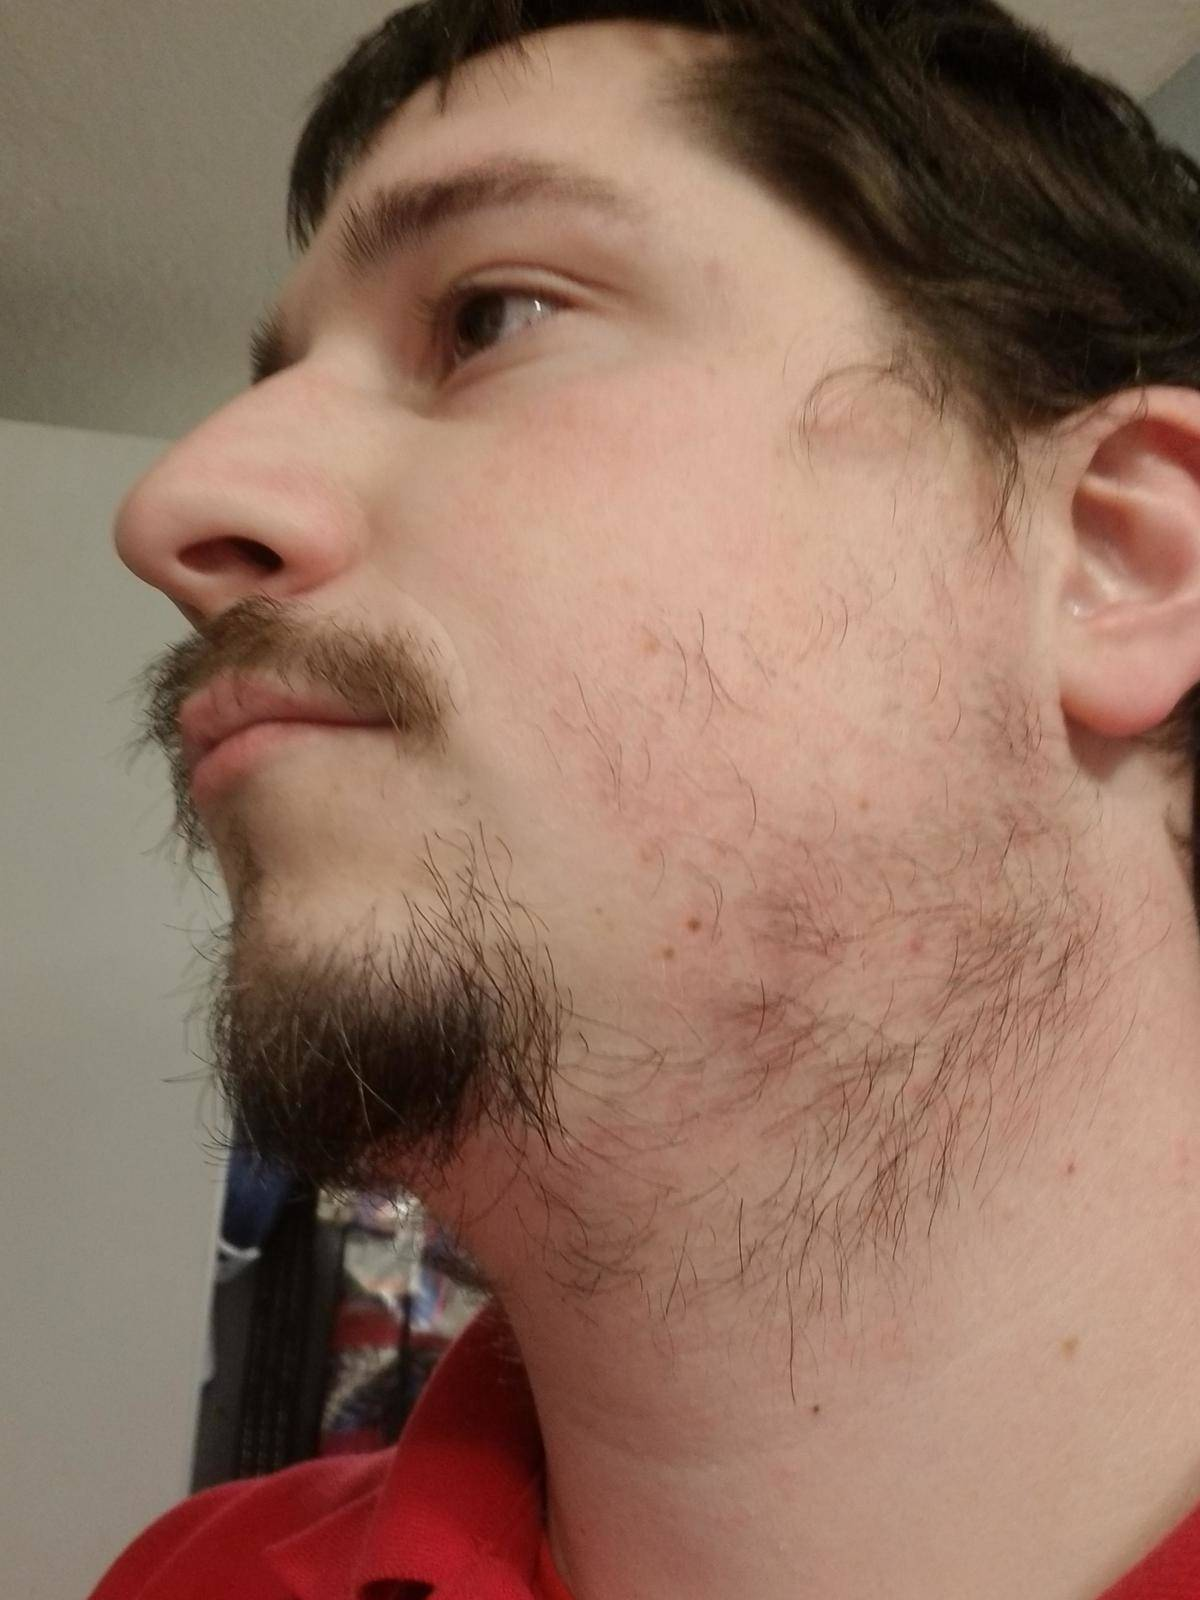 Side view of man with patchy facial hair